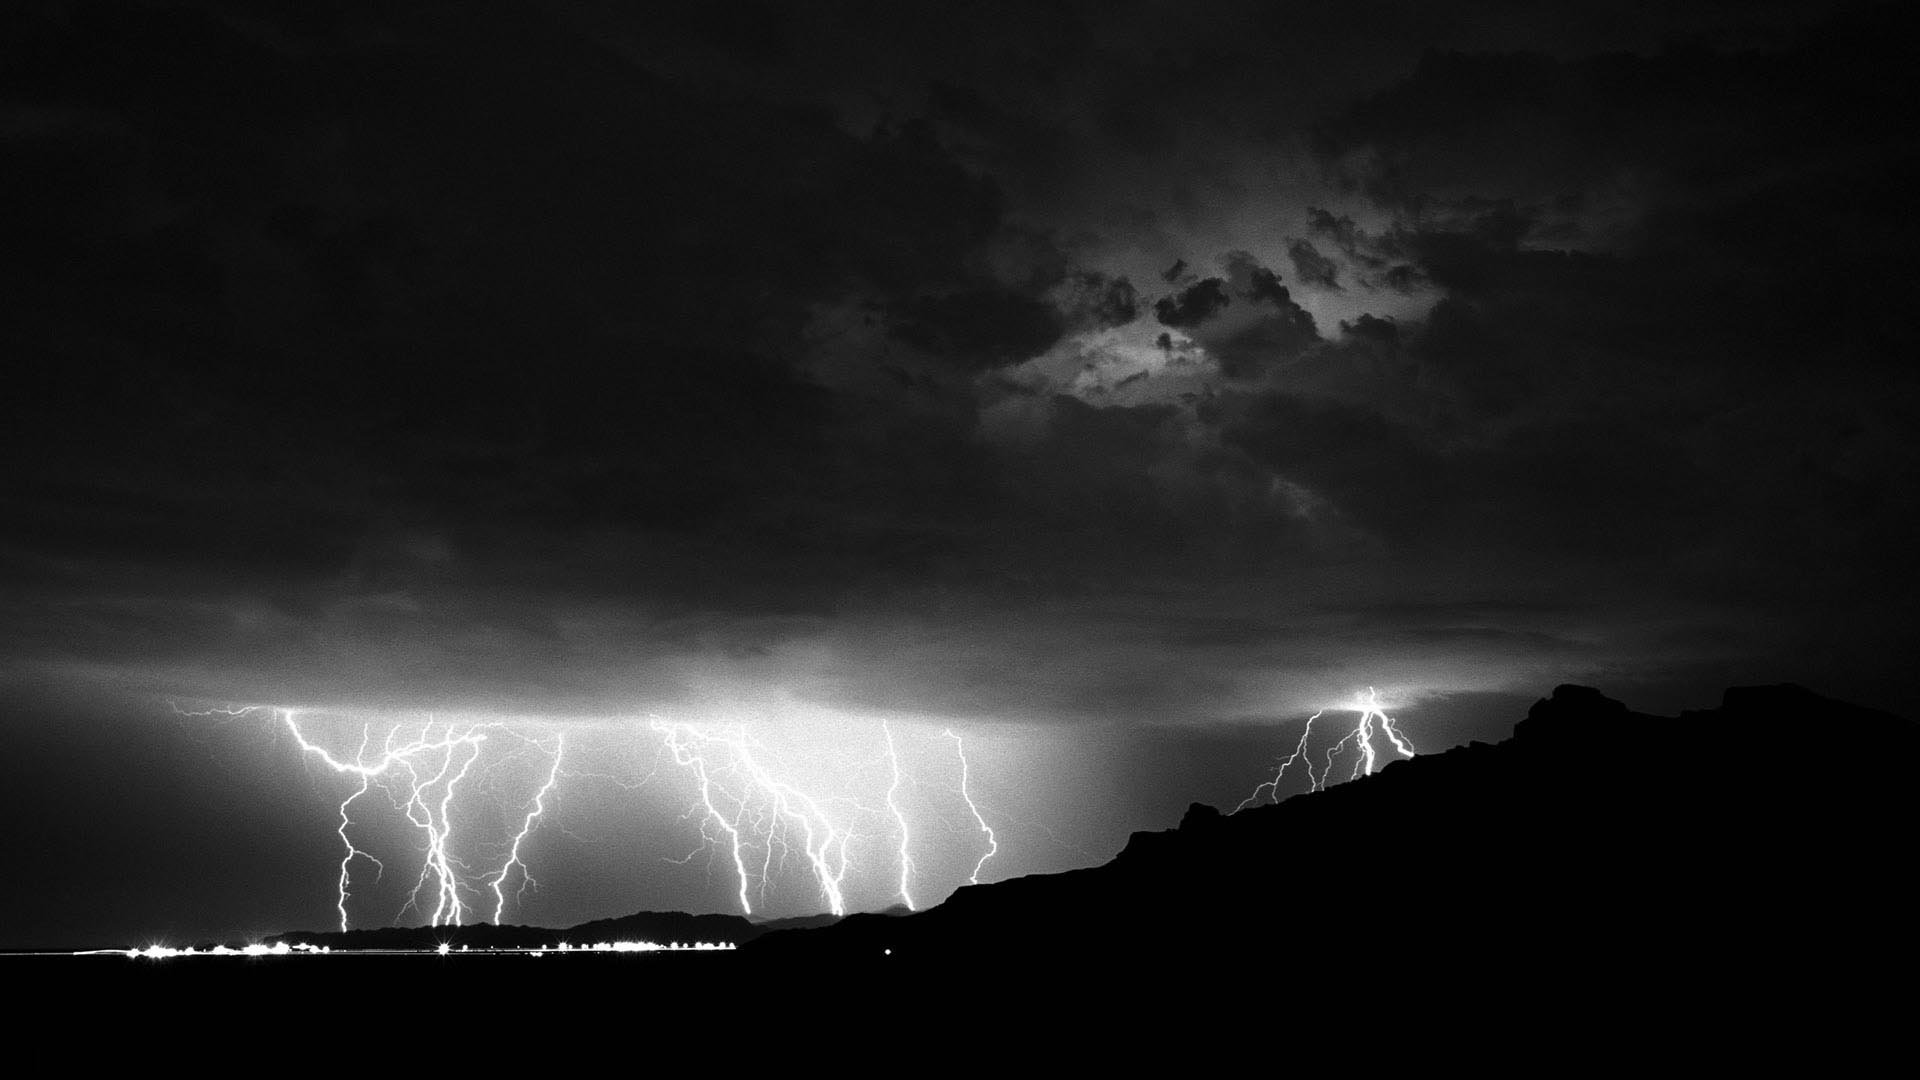 ... wallpaper, Lightning Storm Background hd wallpaper, background desktop